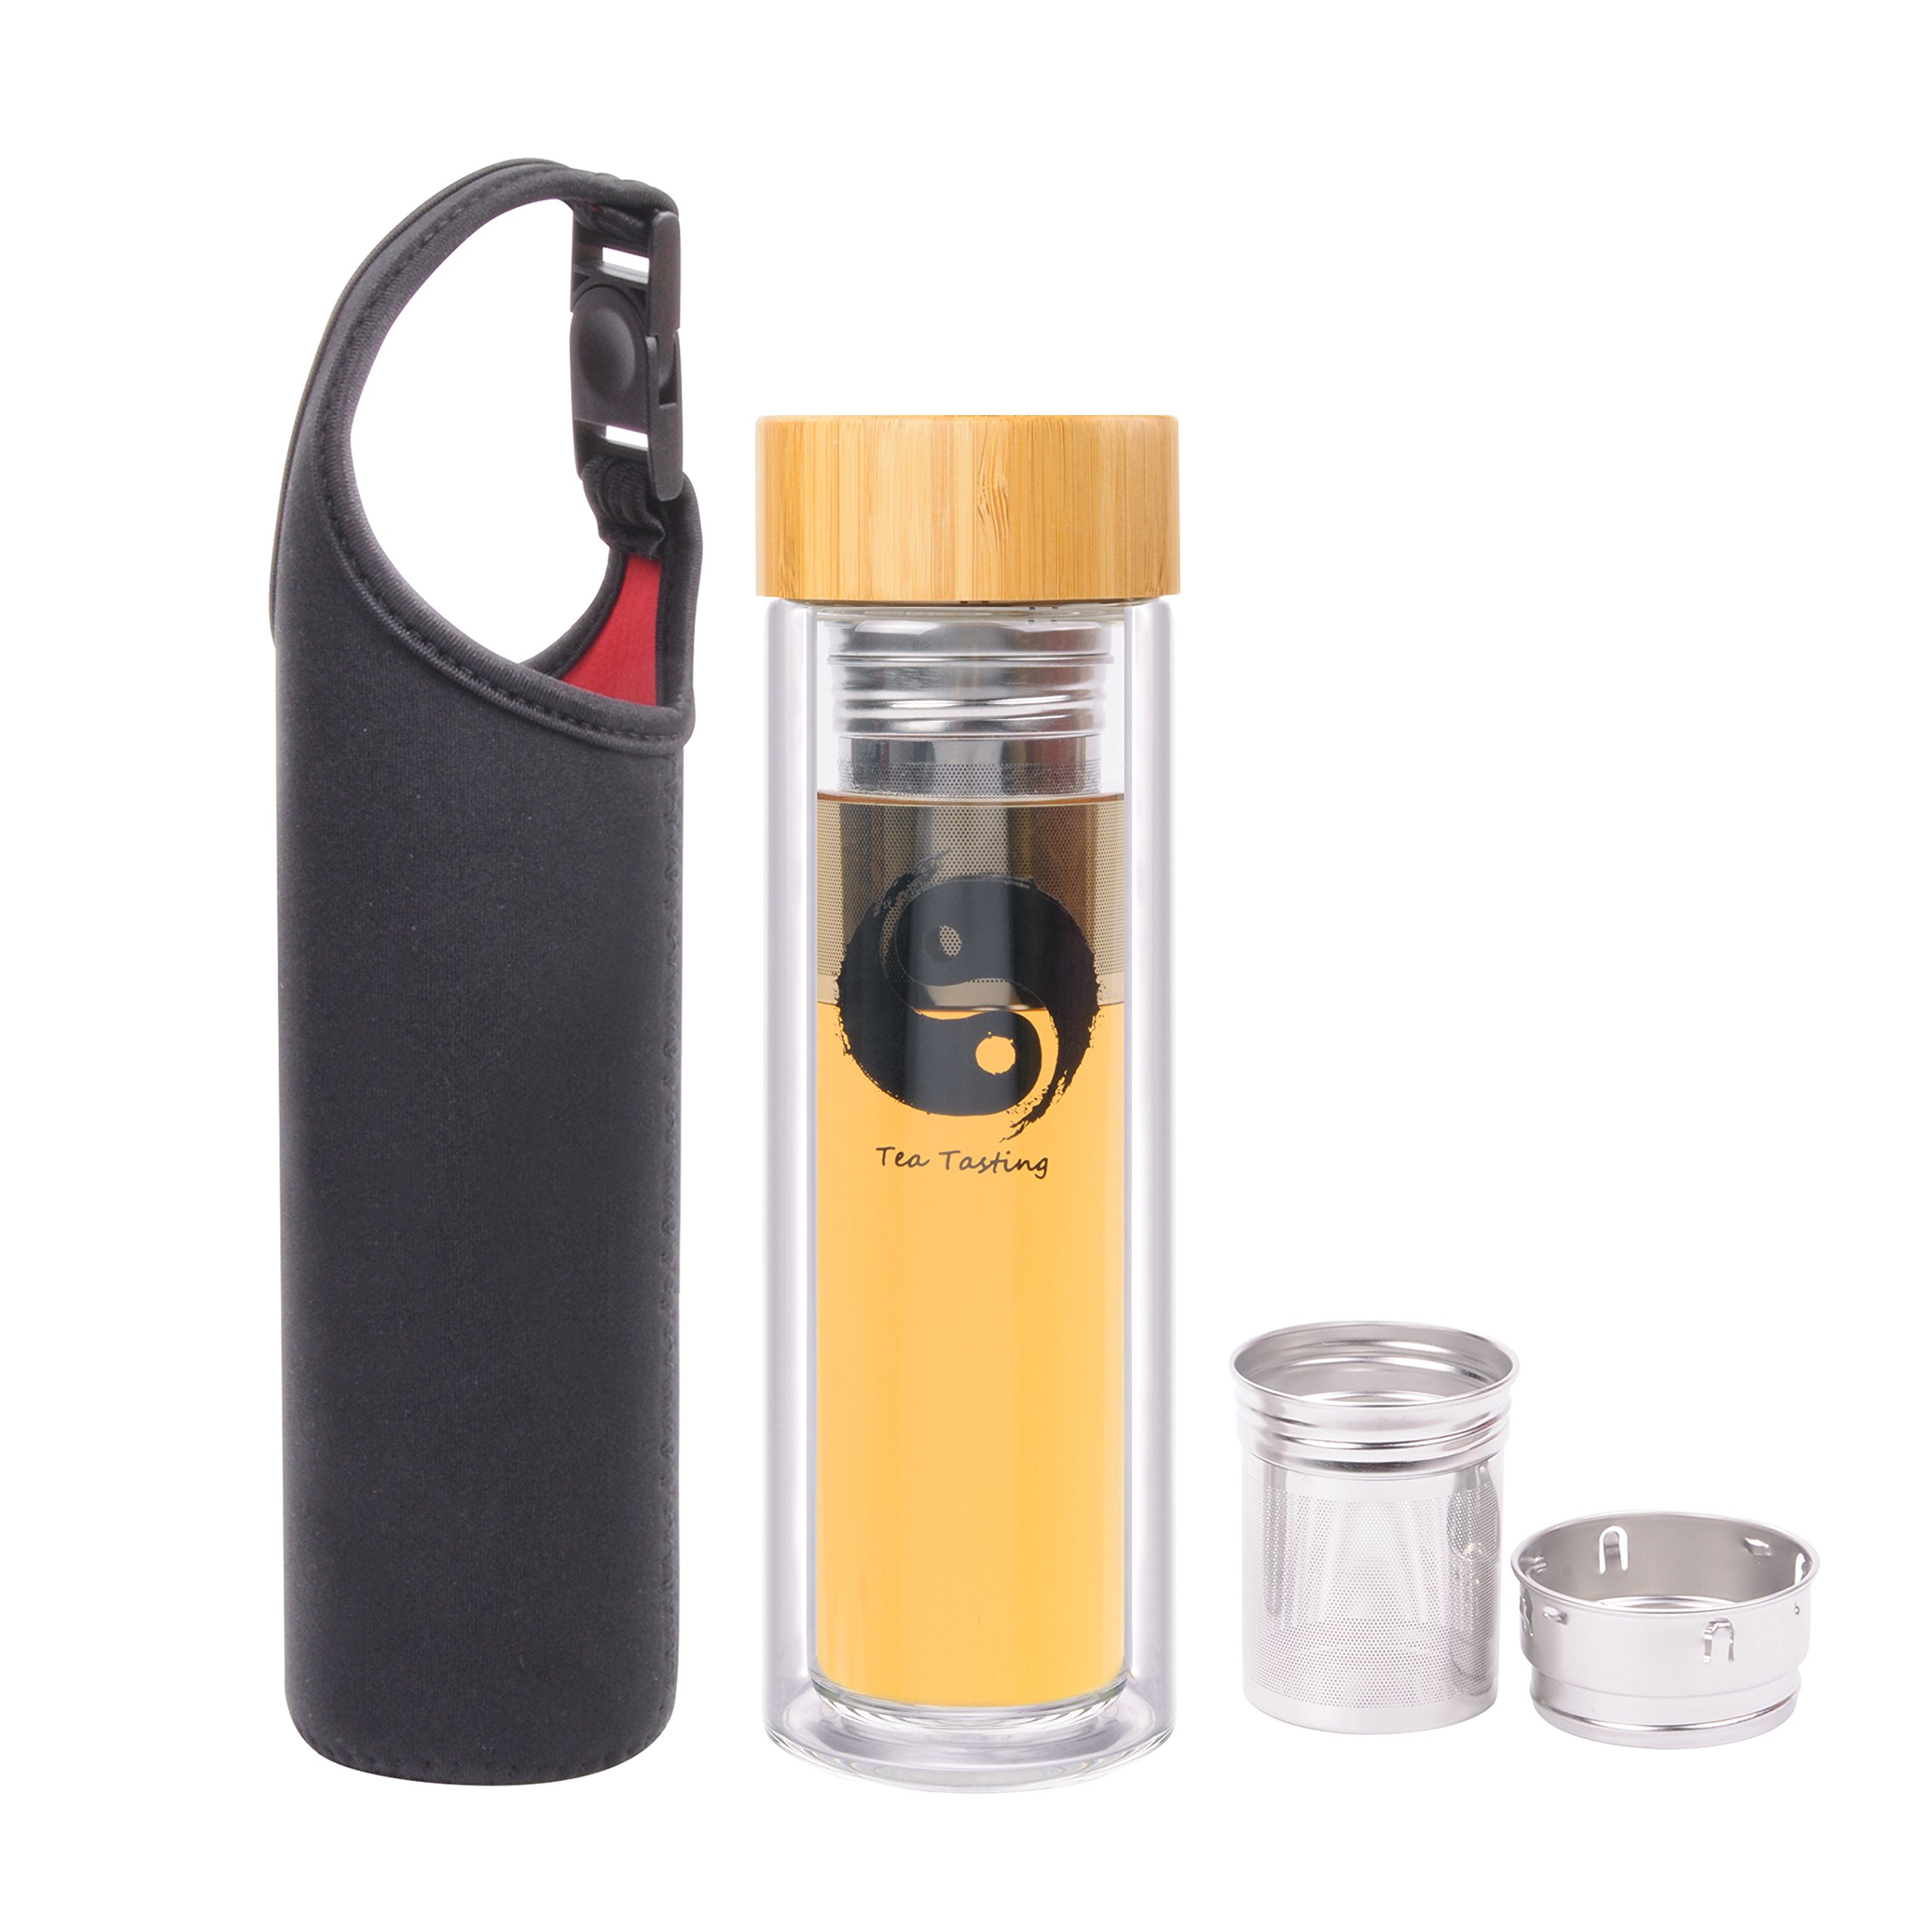 Wotefusi Tea Tumbler Tai Chi Tea bottle Tea Infuser Water Glass Bottle Fruit Infusion Double Wall Heat Resistance with Strainer Filter Bamboo Cover for Outdoor Travel Office Hot&Cold Drink 15.8 Ounces